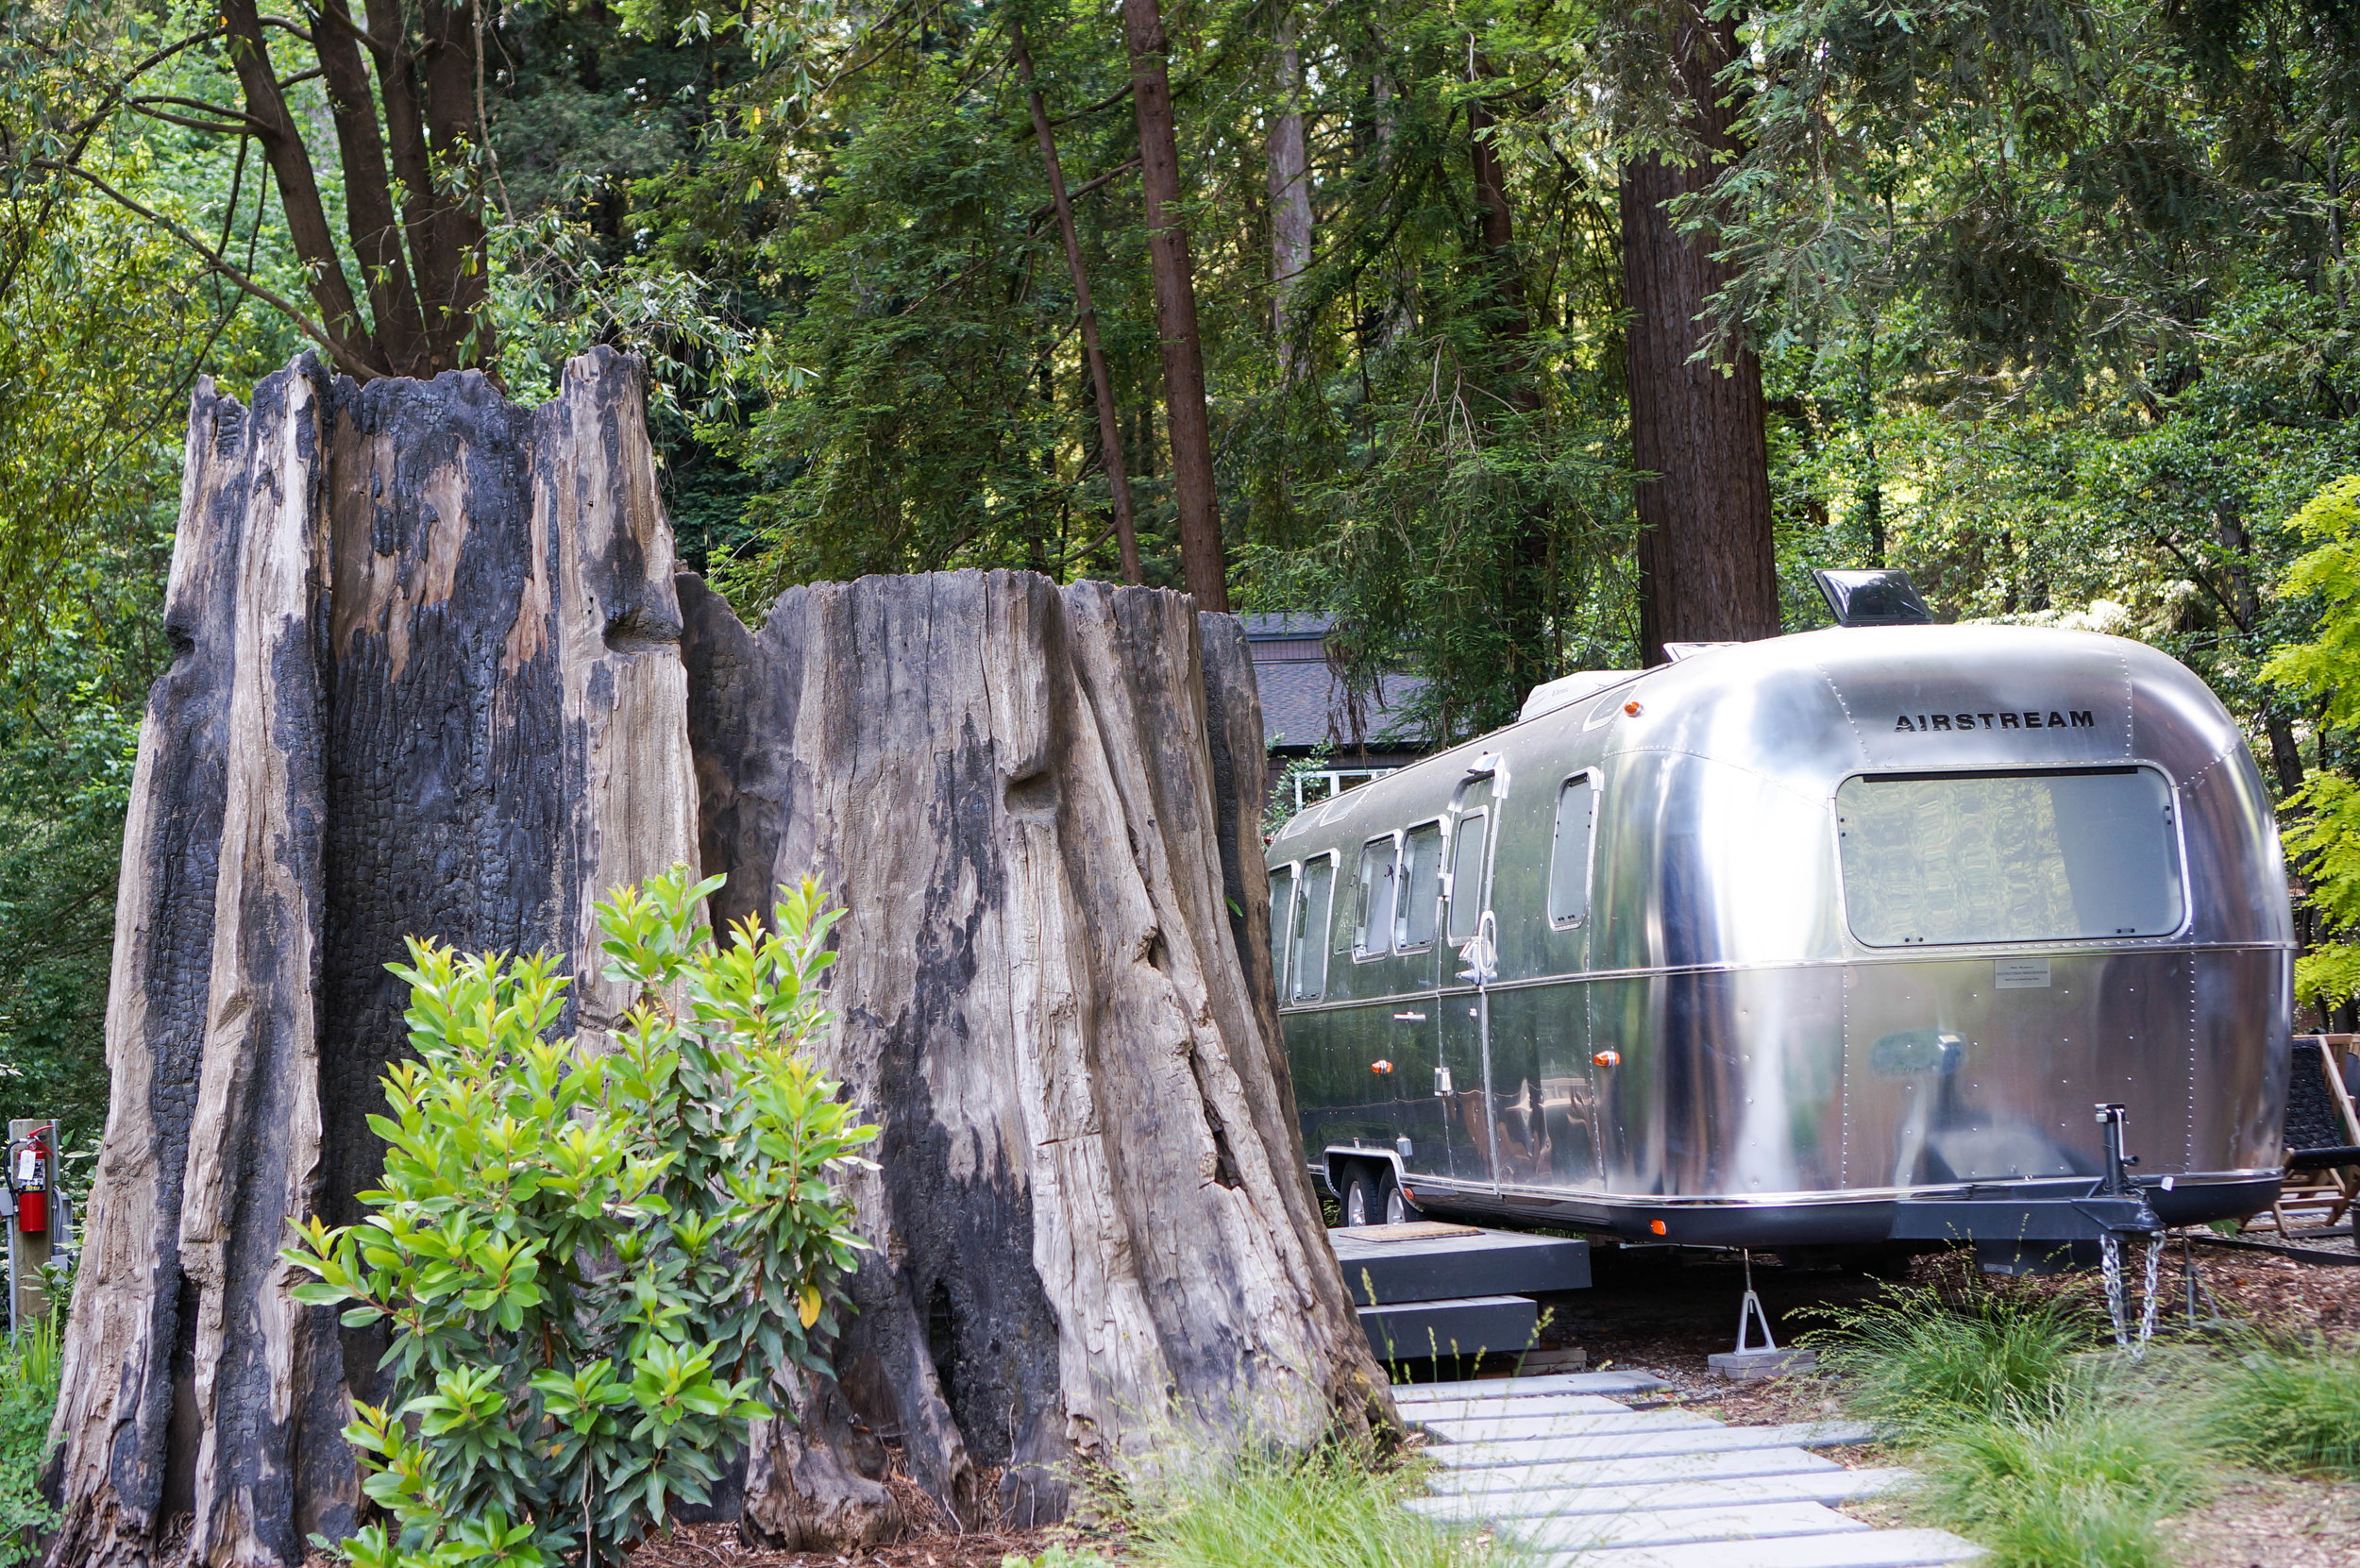 Autocamp Russian River is located at 14120 Old Cazadero Road in Guerneville, CA.